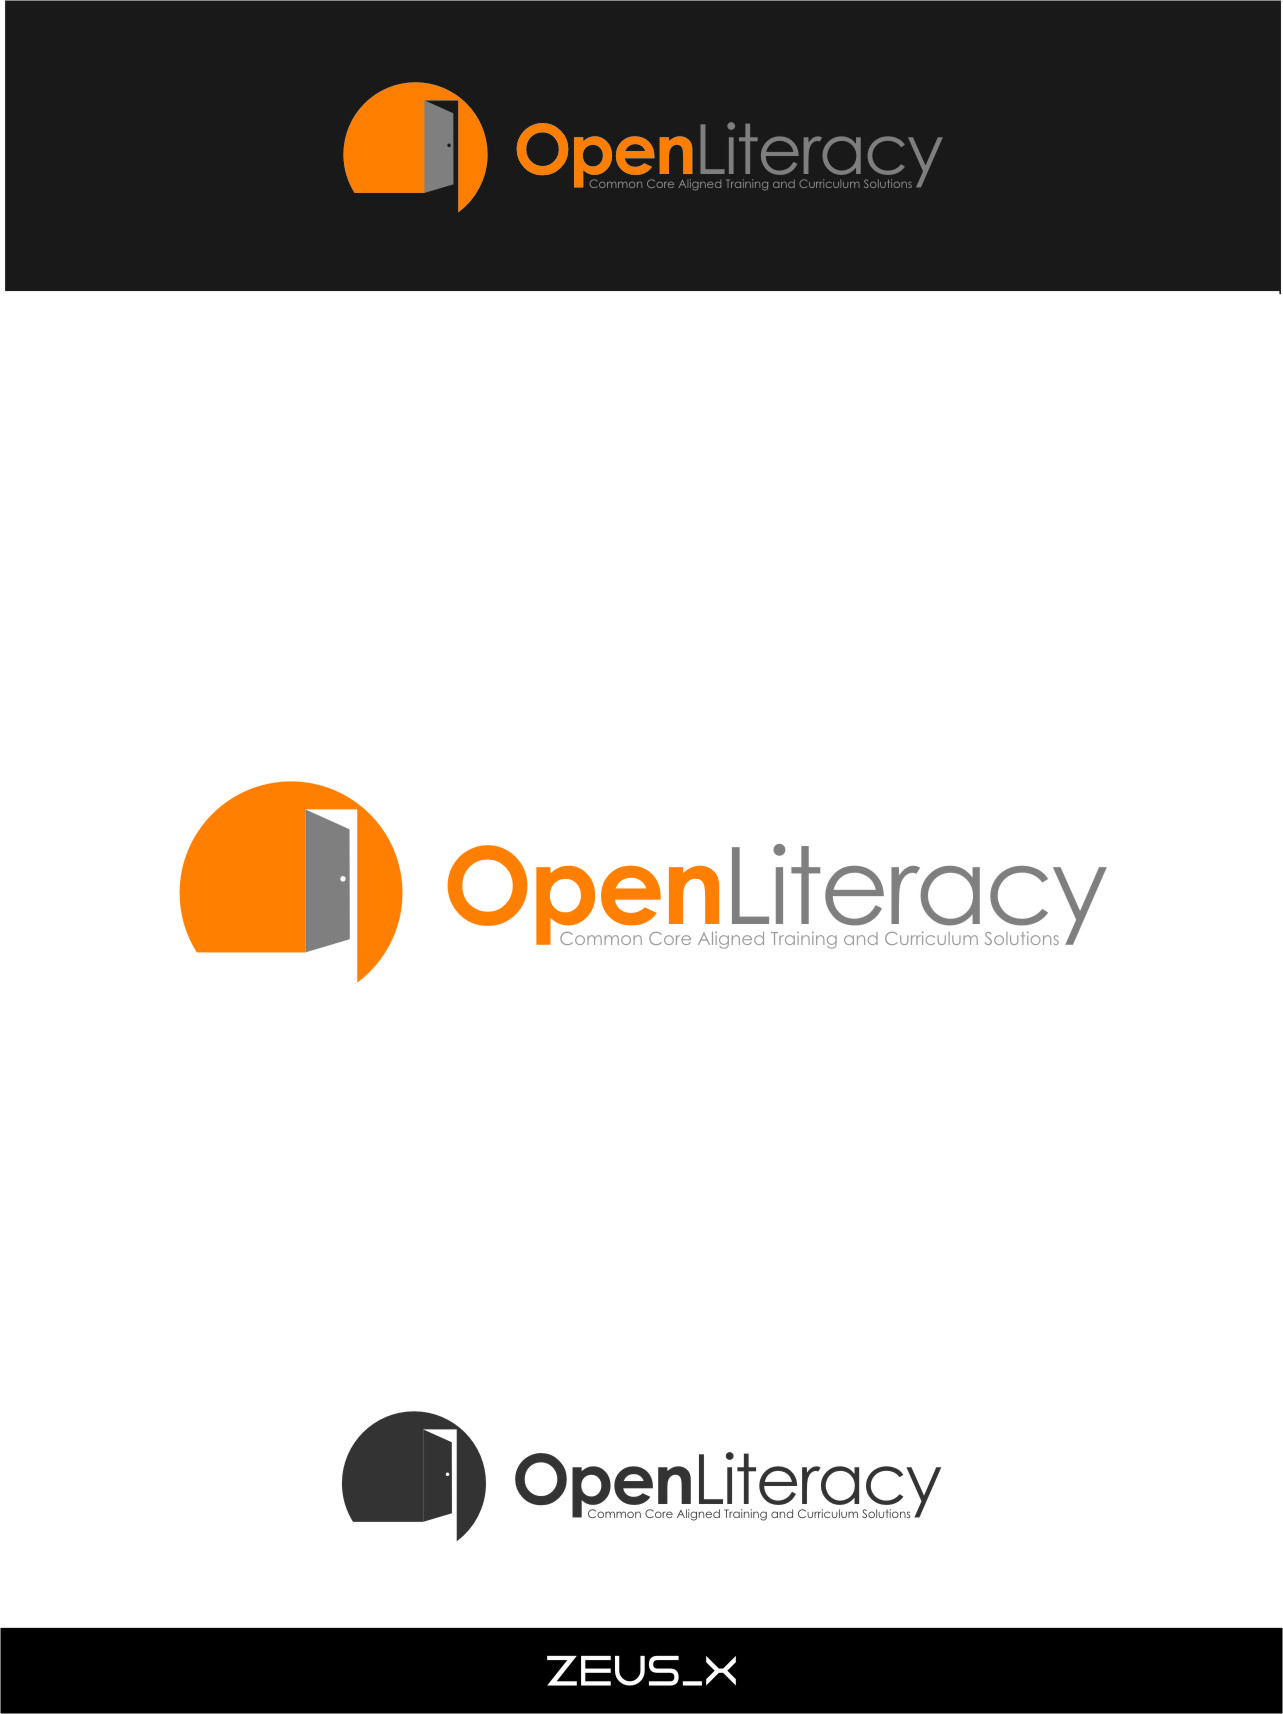 Logo Design by Ngepet_art - Entry No. 147 in the Logo Design Contest Inspiring Logo Design for OpenLiteracy.